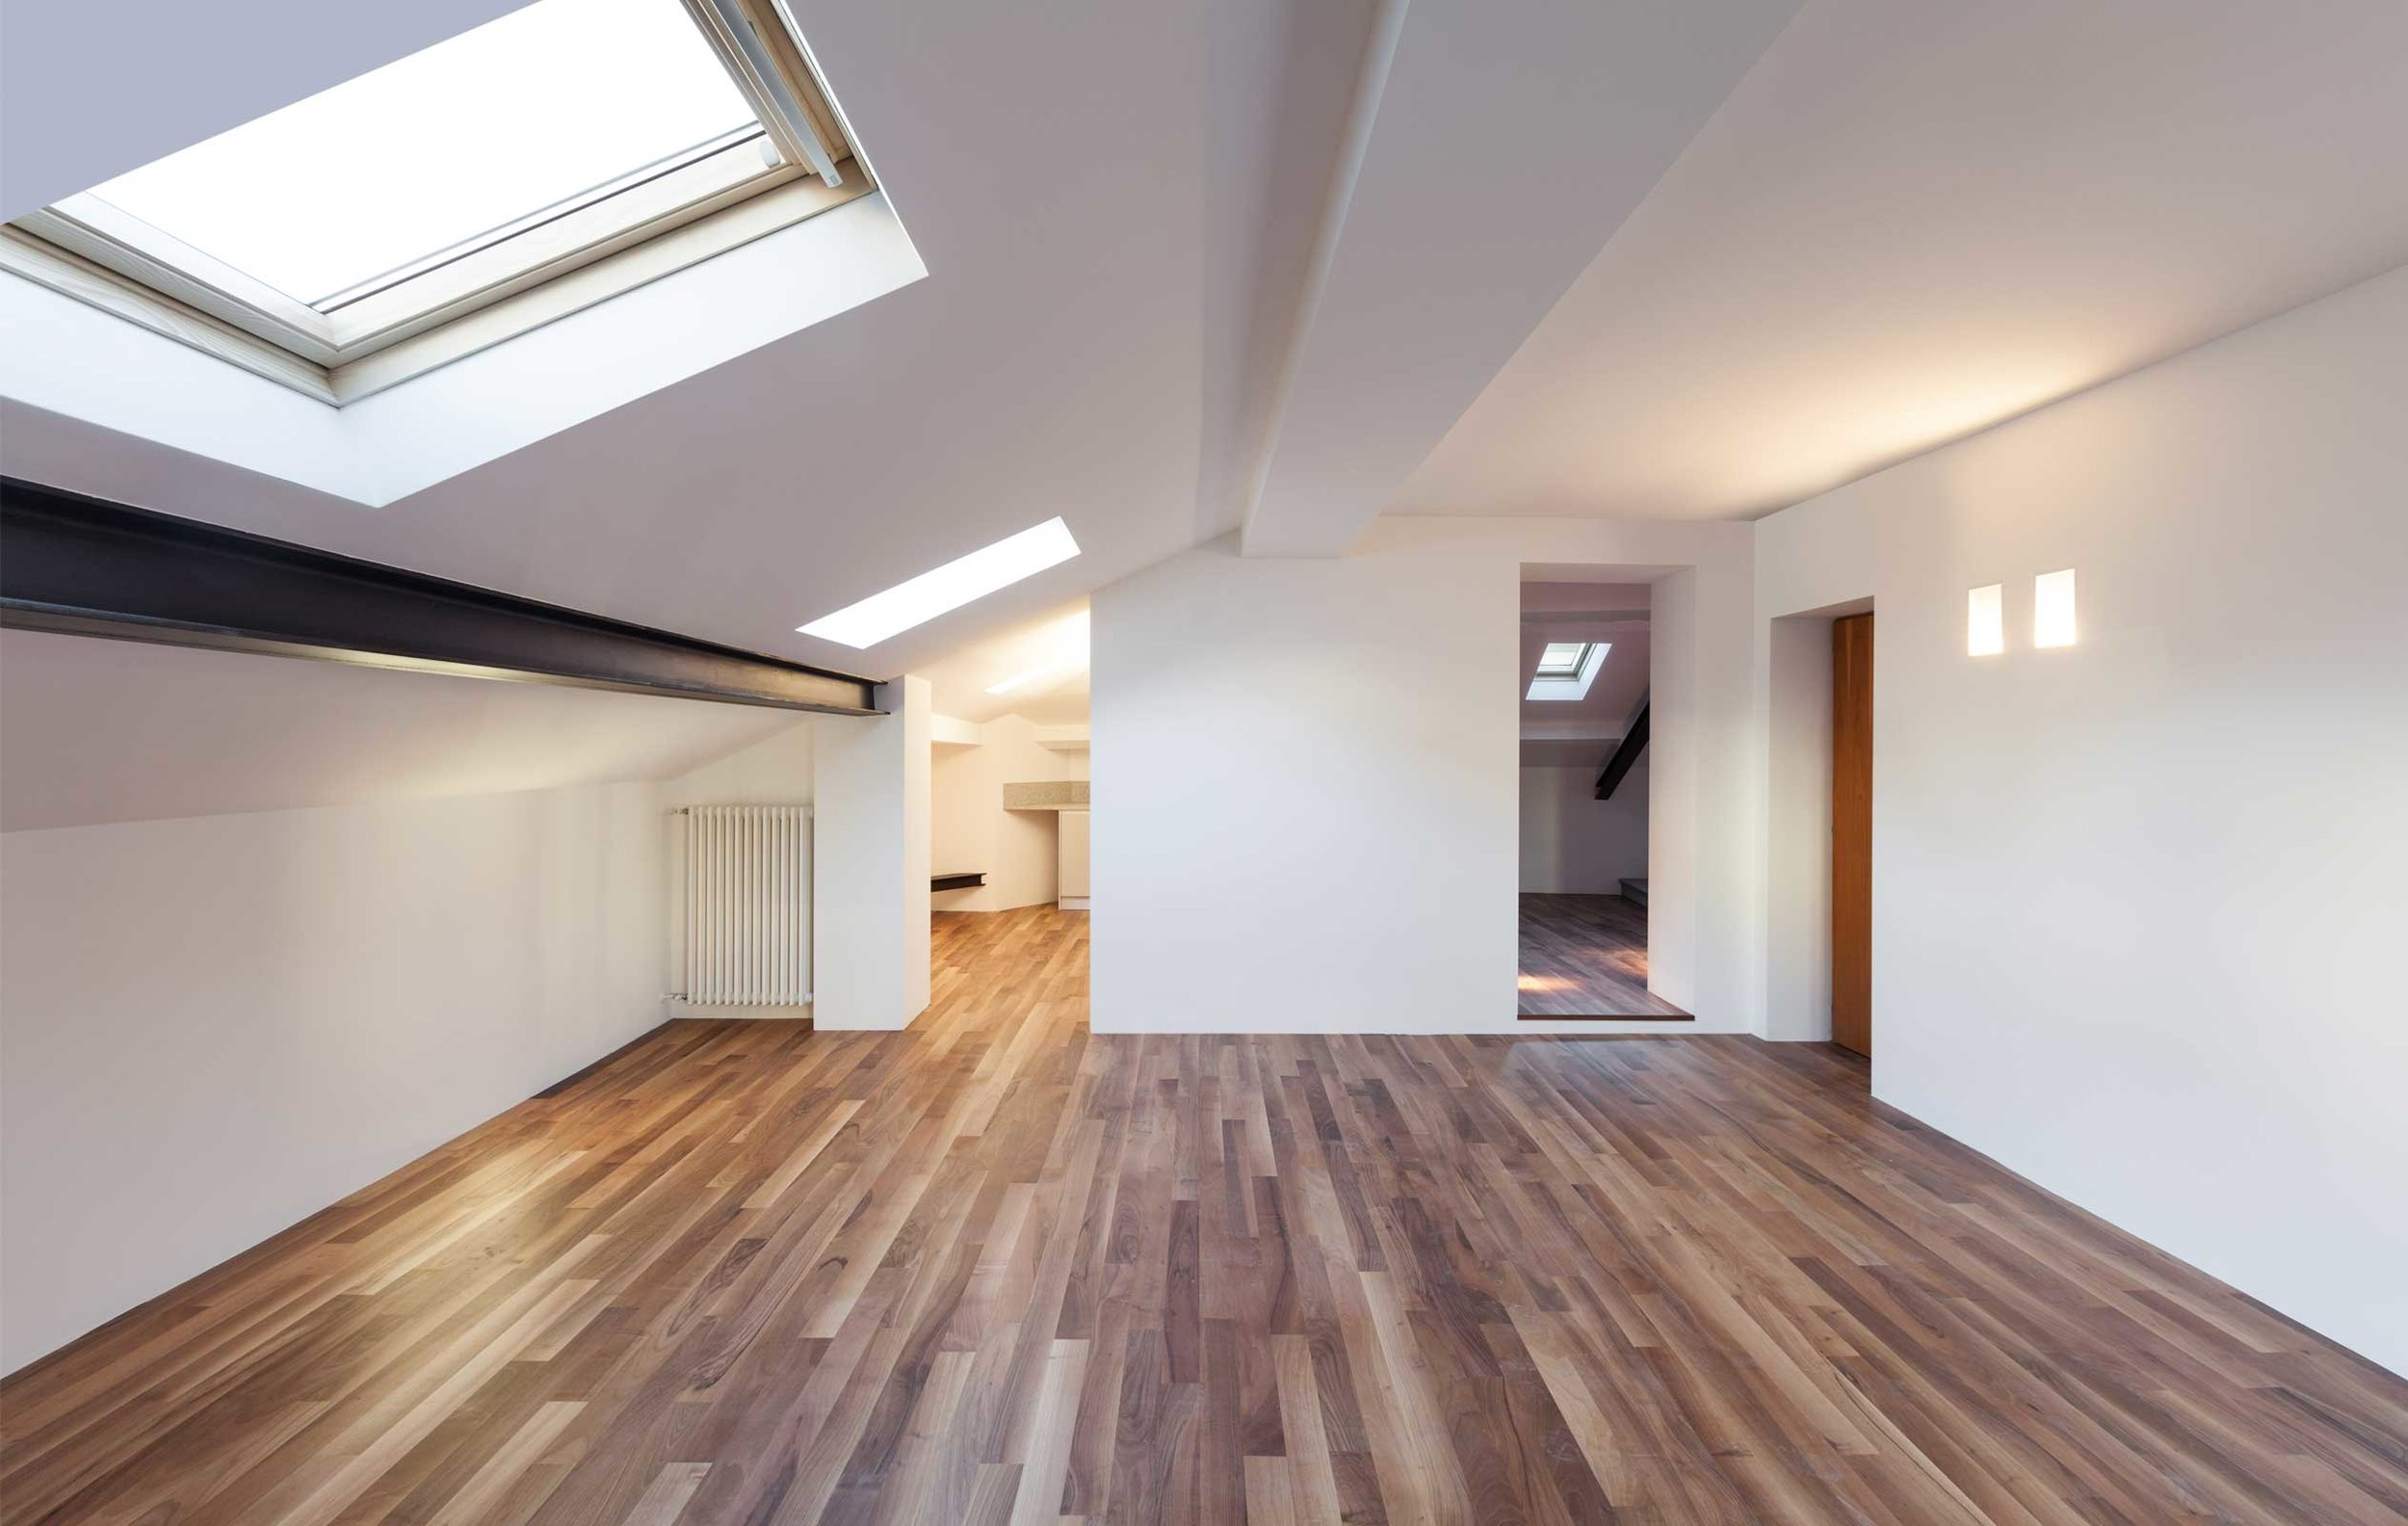 Lucky-fitsch-wooden-floor-finishes-hero-shot.jpg